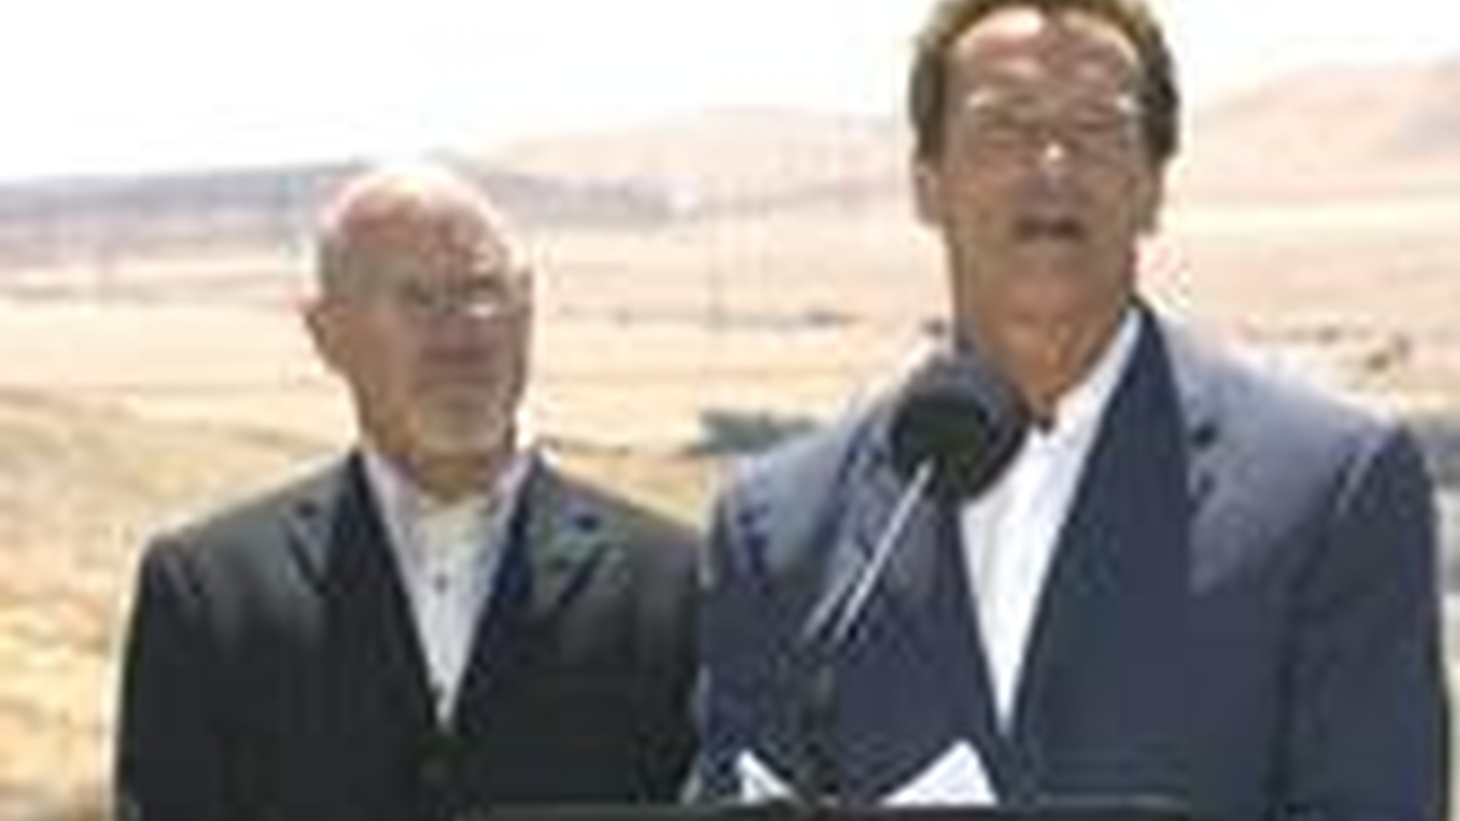 Last year California voters approved billions of dollars in flood control bonds. This week Governor Schwarzenegger is campaigning for billions in water storage projects to protect against drought. On Reporter's Notebook, LA's Roman Catholic Archdiocese has settled sexual abuse cases by 221 priests. Why no criminal charges?